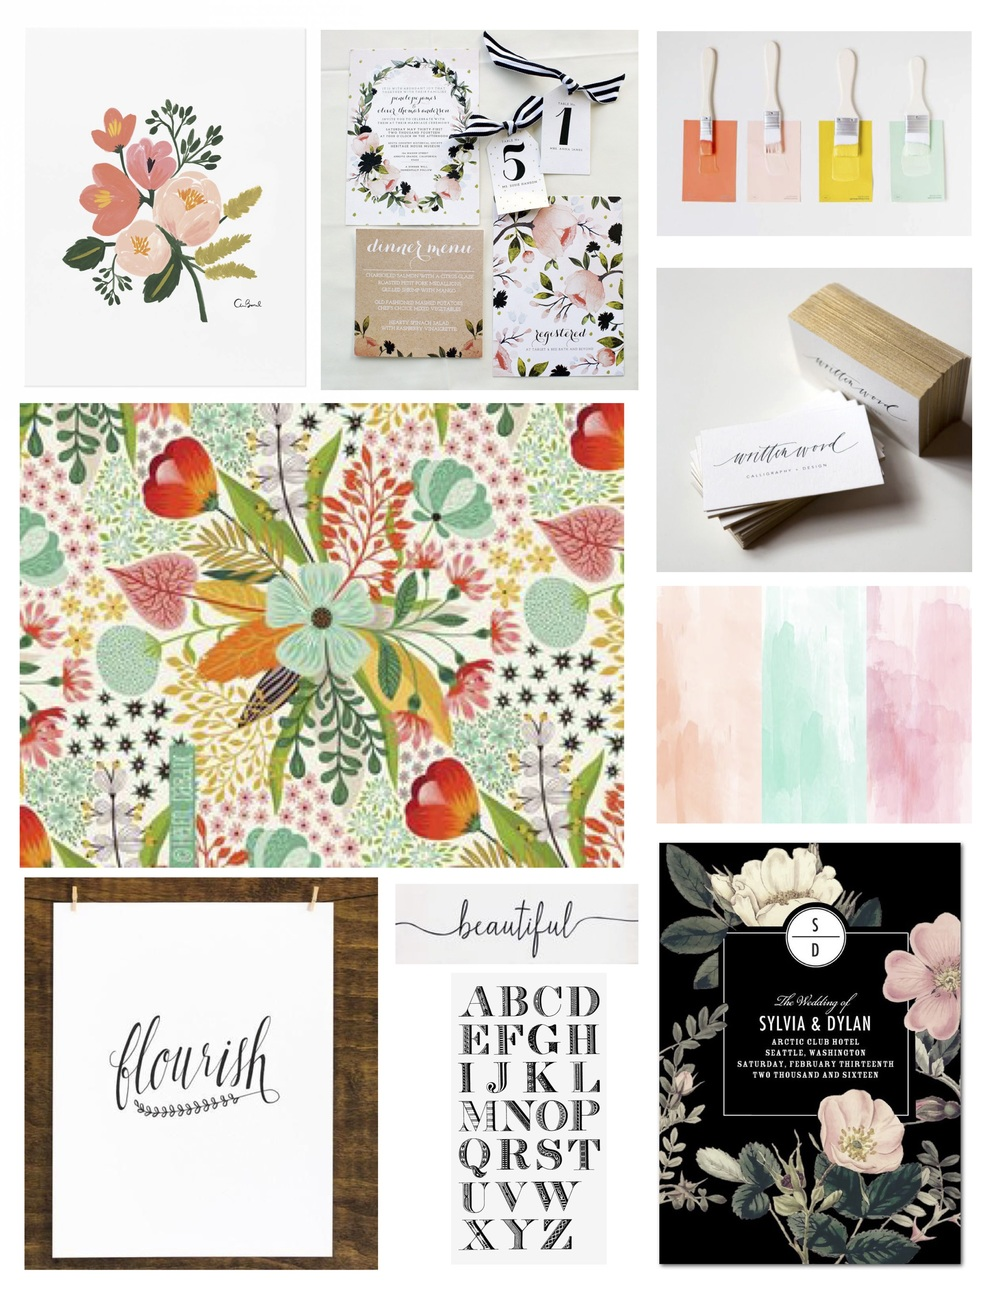 Ali Leigh Brand Inspiration Board by Kenna and Louise